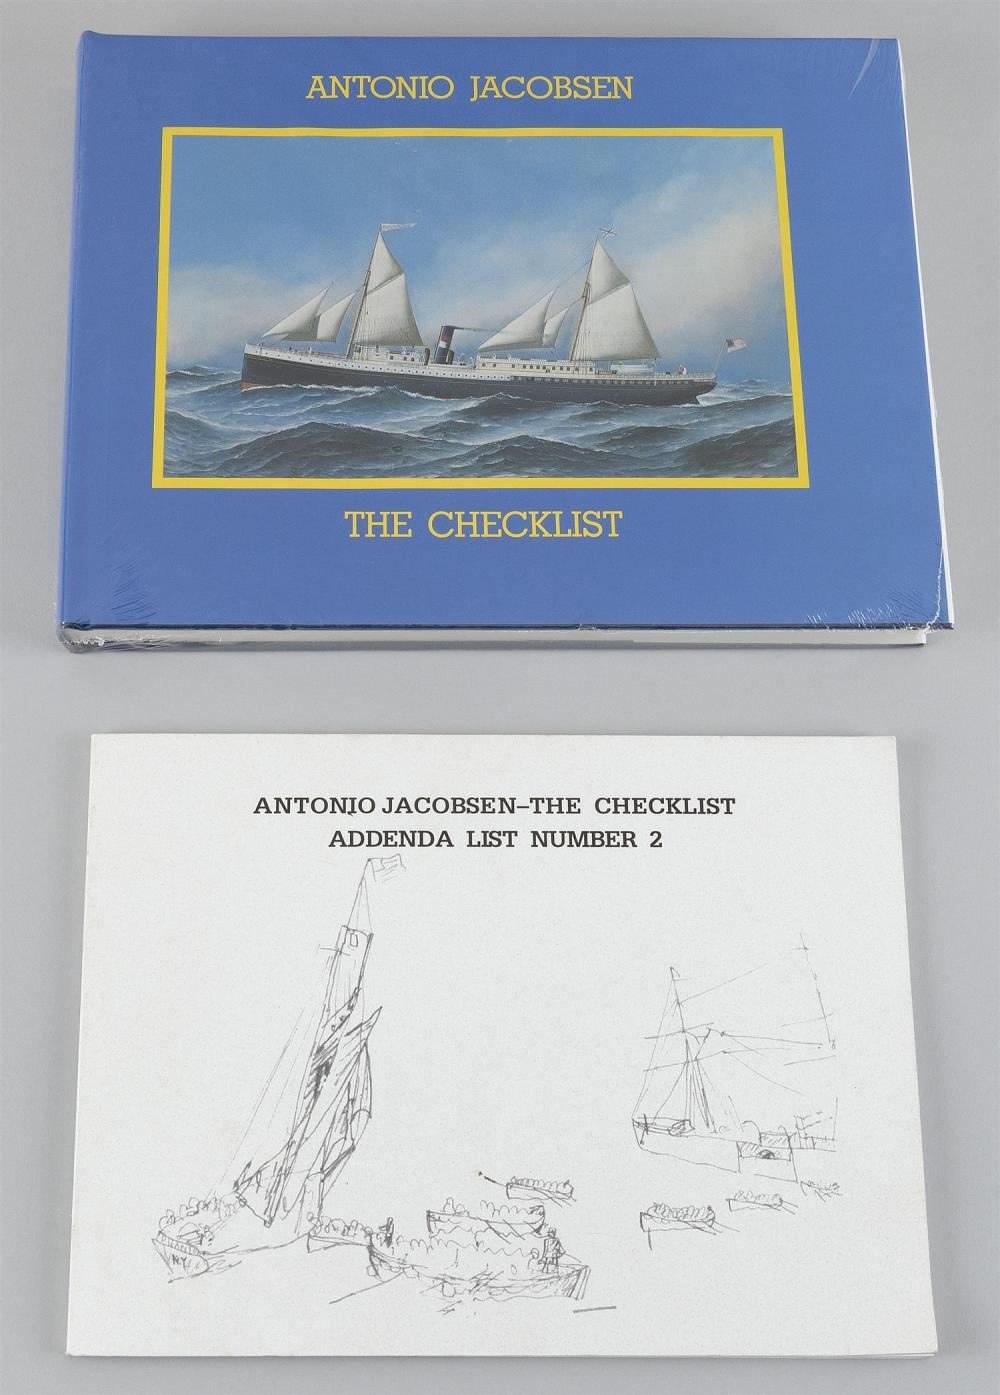 MARINE ART BOOK ANTONIO JACOBSEN, THE CHECKLIST By Harold S. Sniffen (Newport News, Va., 1984). Oblong Q. Cloth. DJ. With supplement.